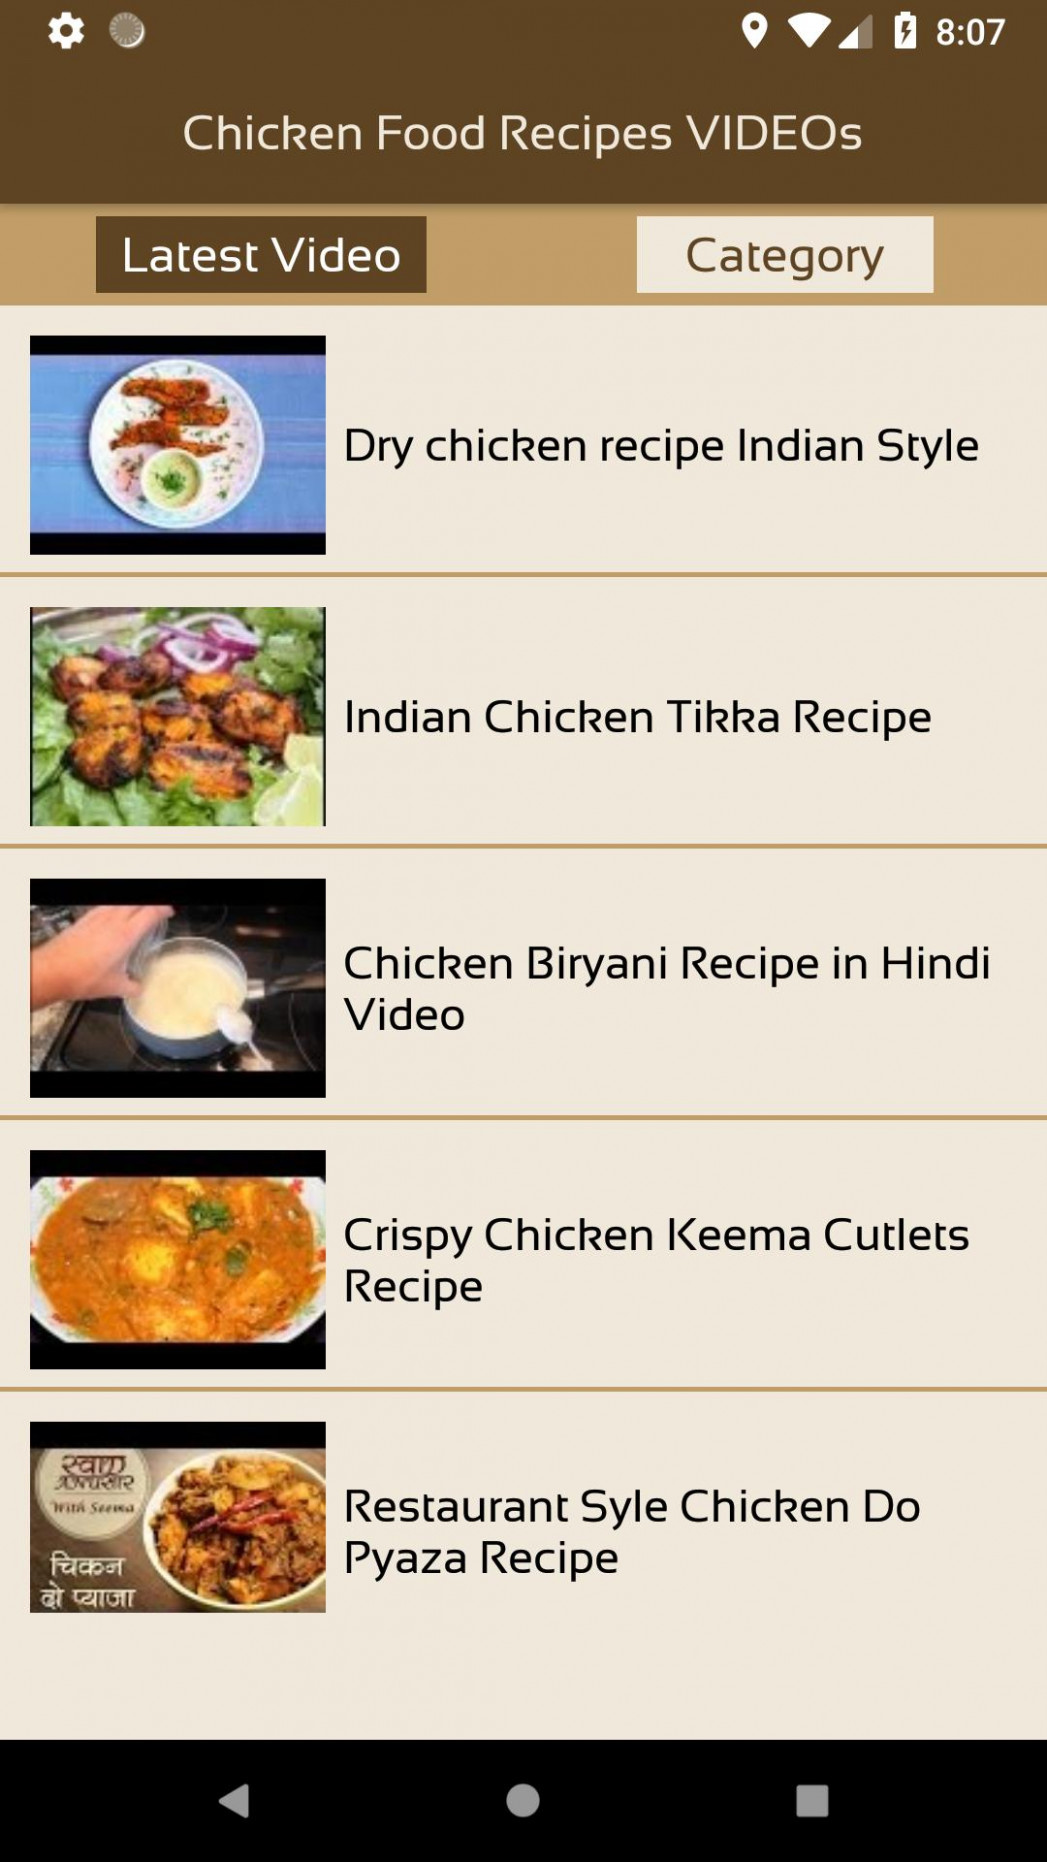 Chicken Food Recipes VIDEOs for Android - APK Download - food recipes video download